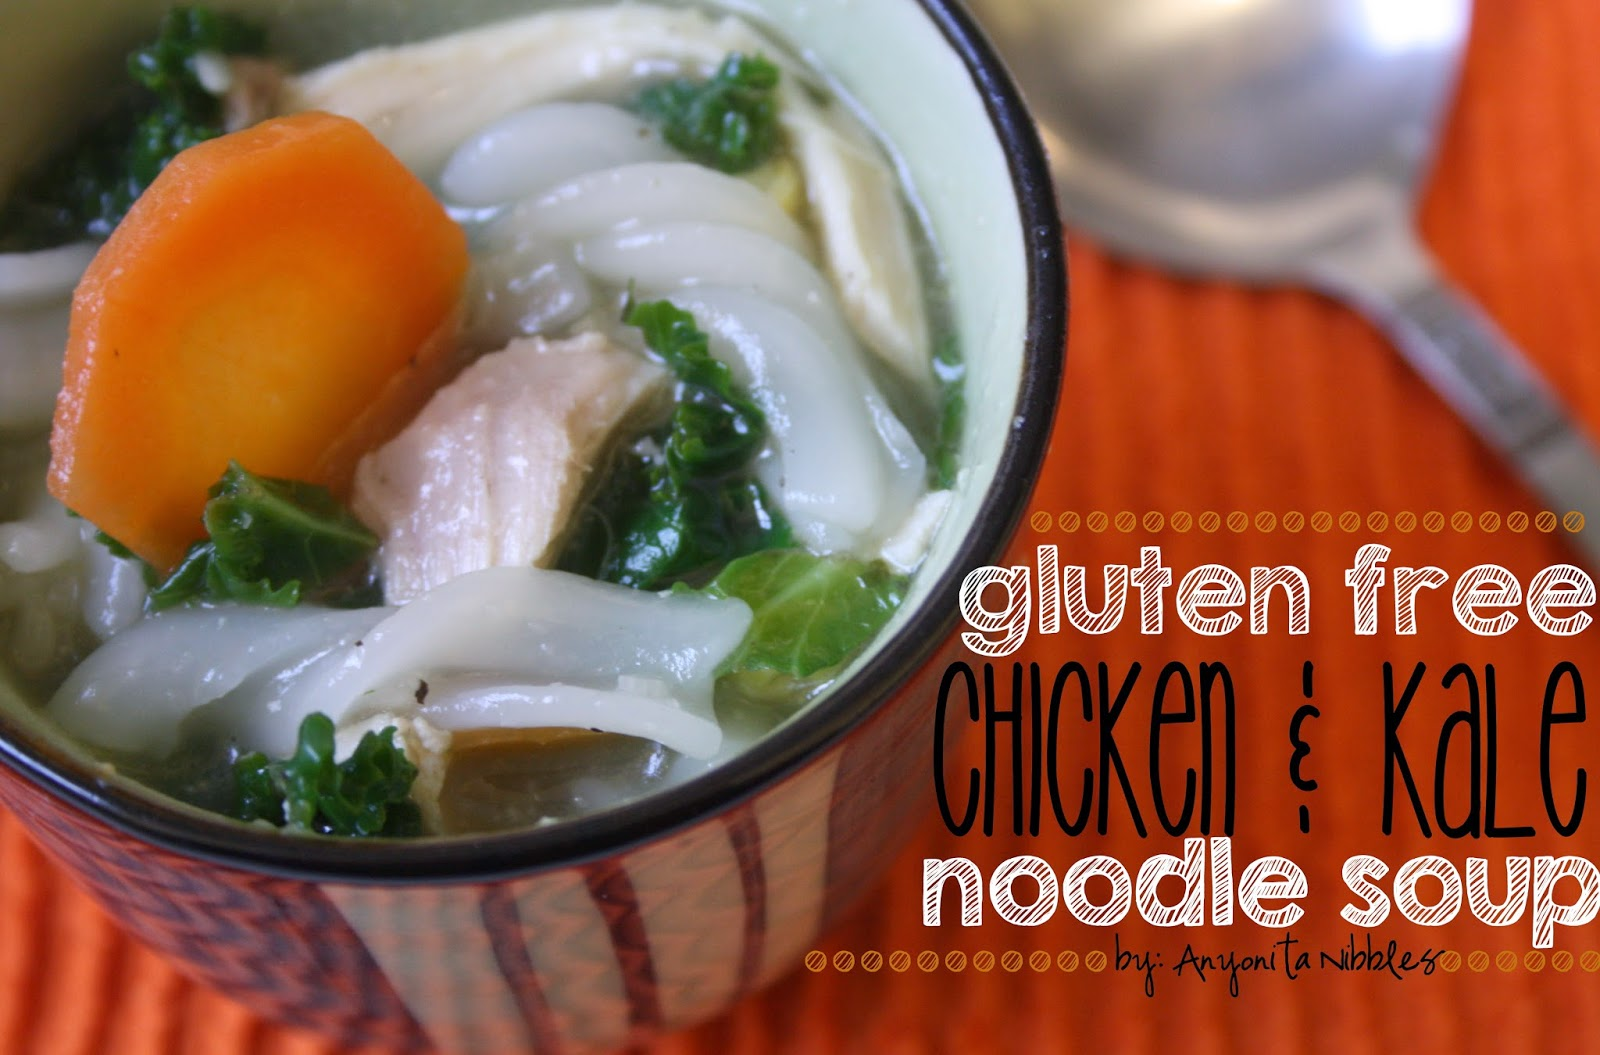 Close up of Gluten Free Chicken & Kale Noodle Soup | Anyonita Nibbles